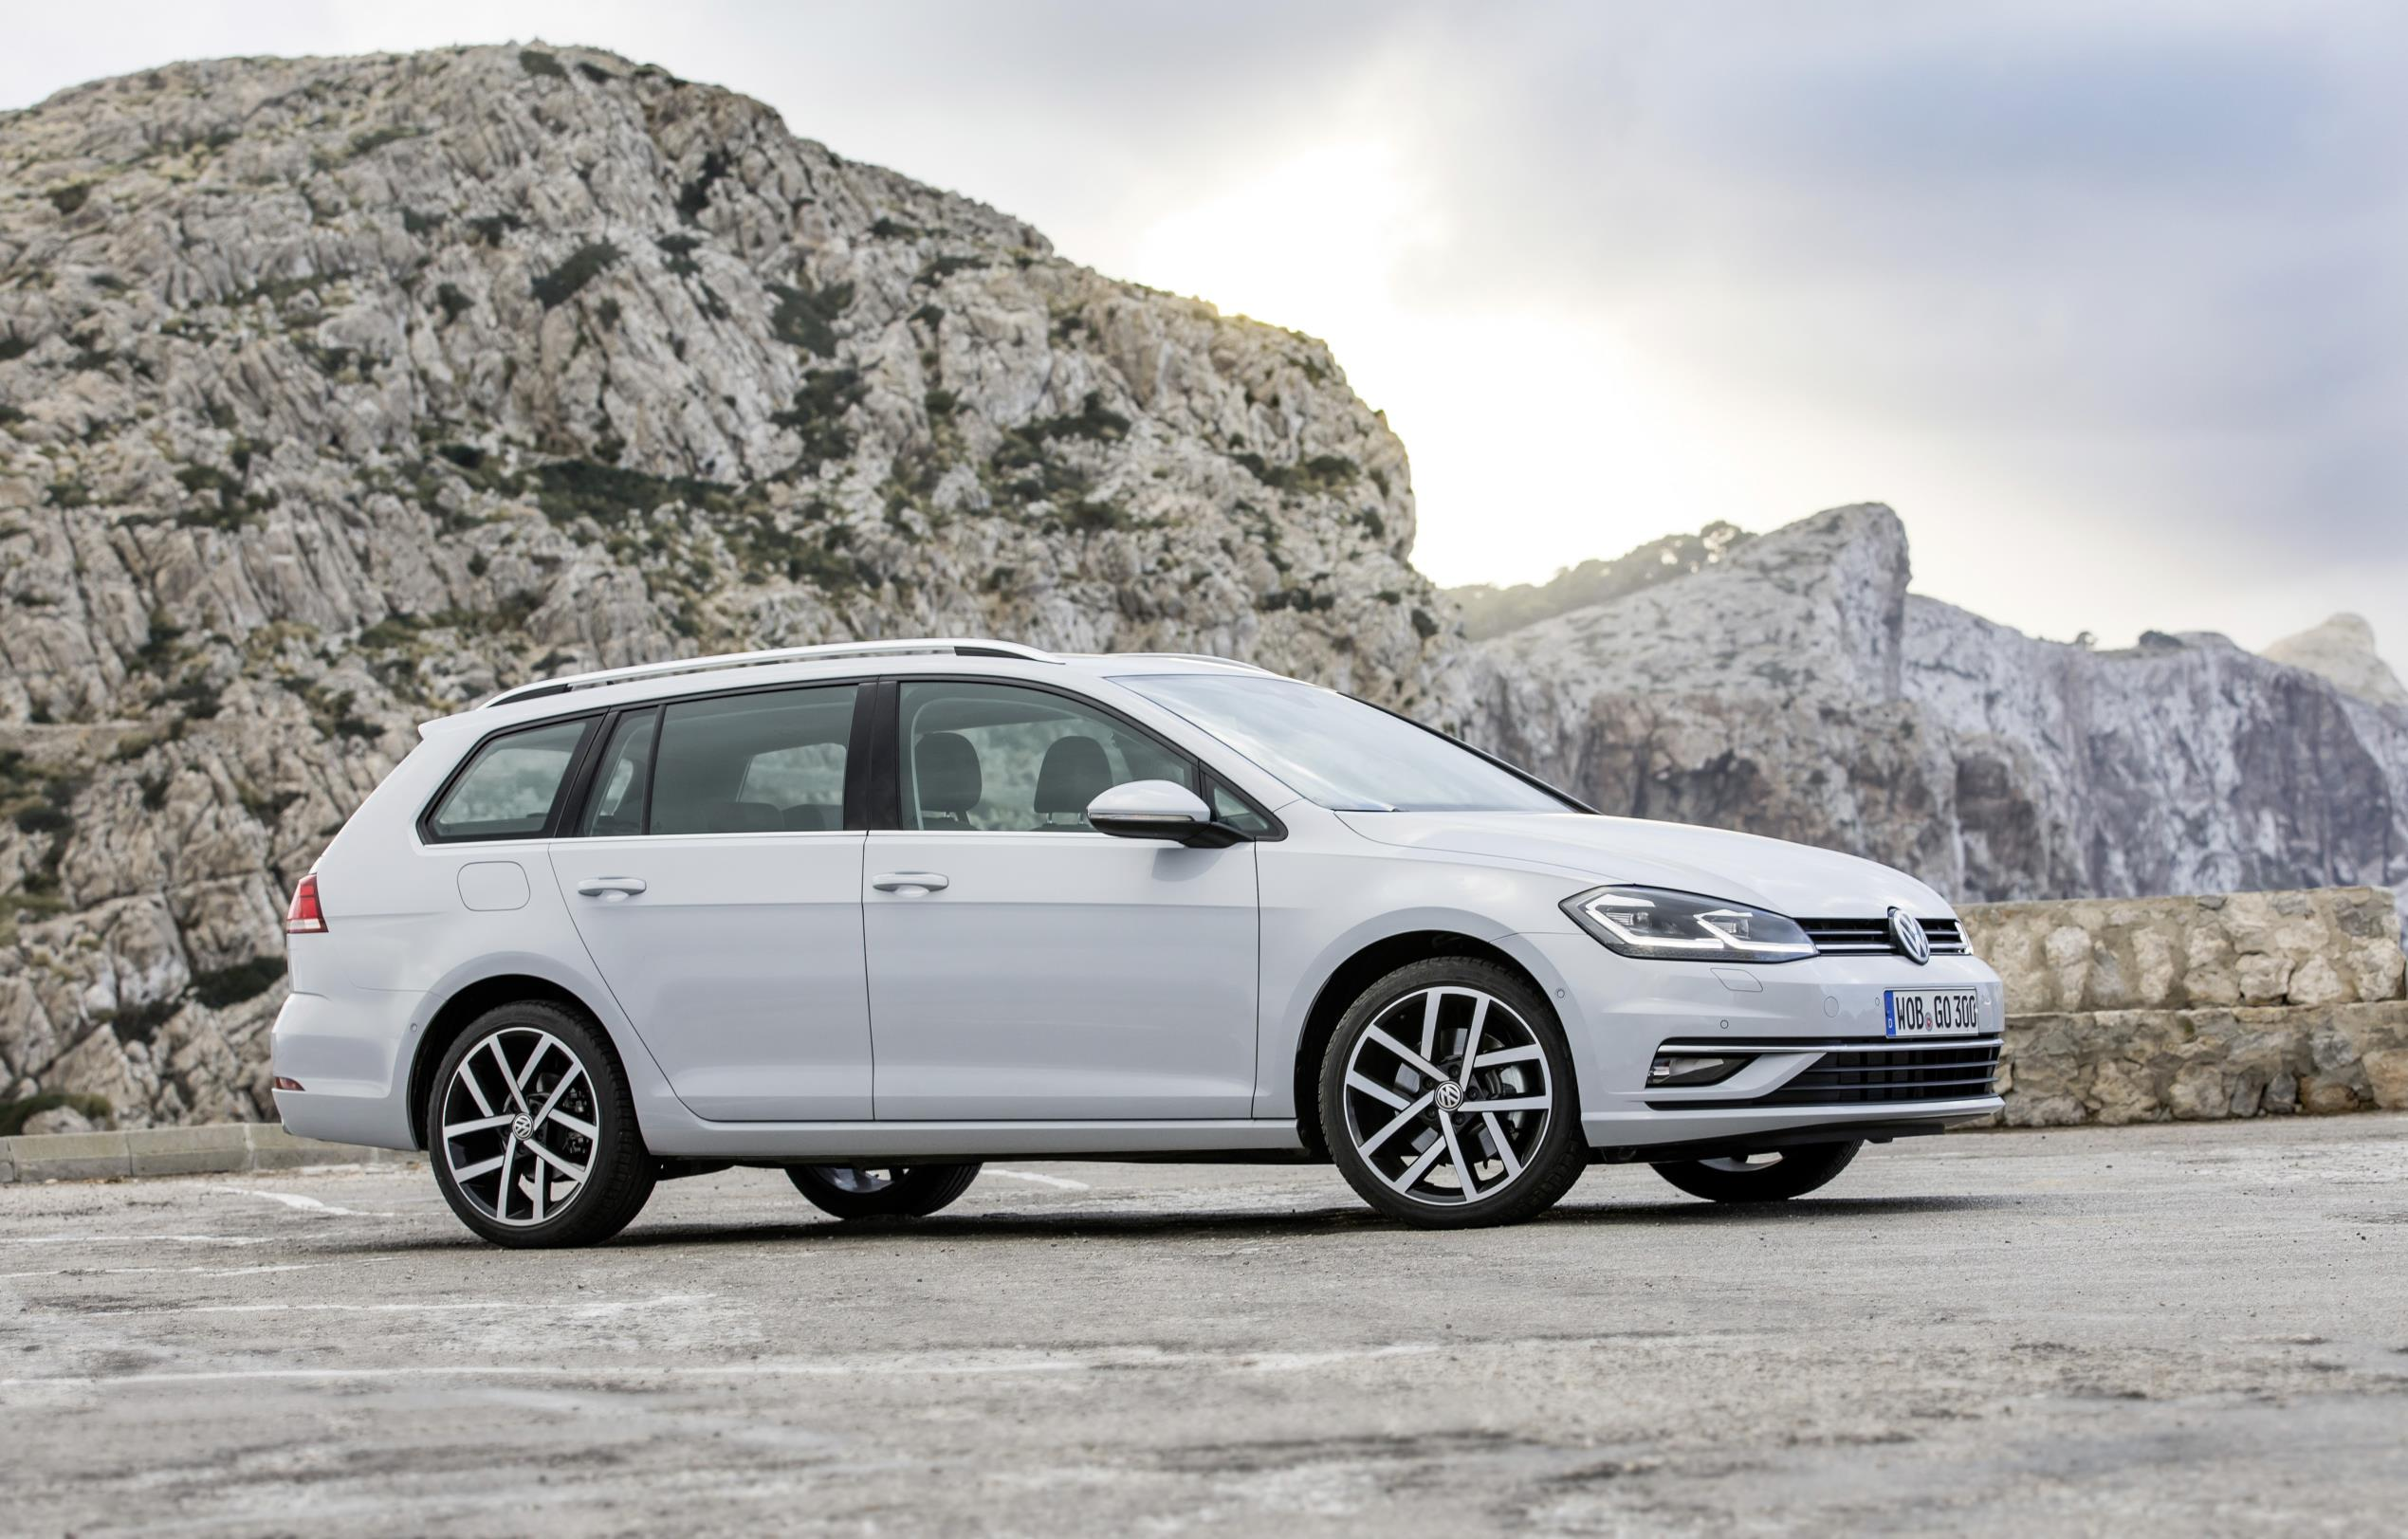 vw prices golf mk7 facelift in the uk starts from 17 625 autoevolution. Black Bedroom Furniture Sets. Home Design Ideas